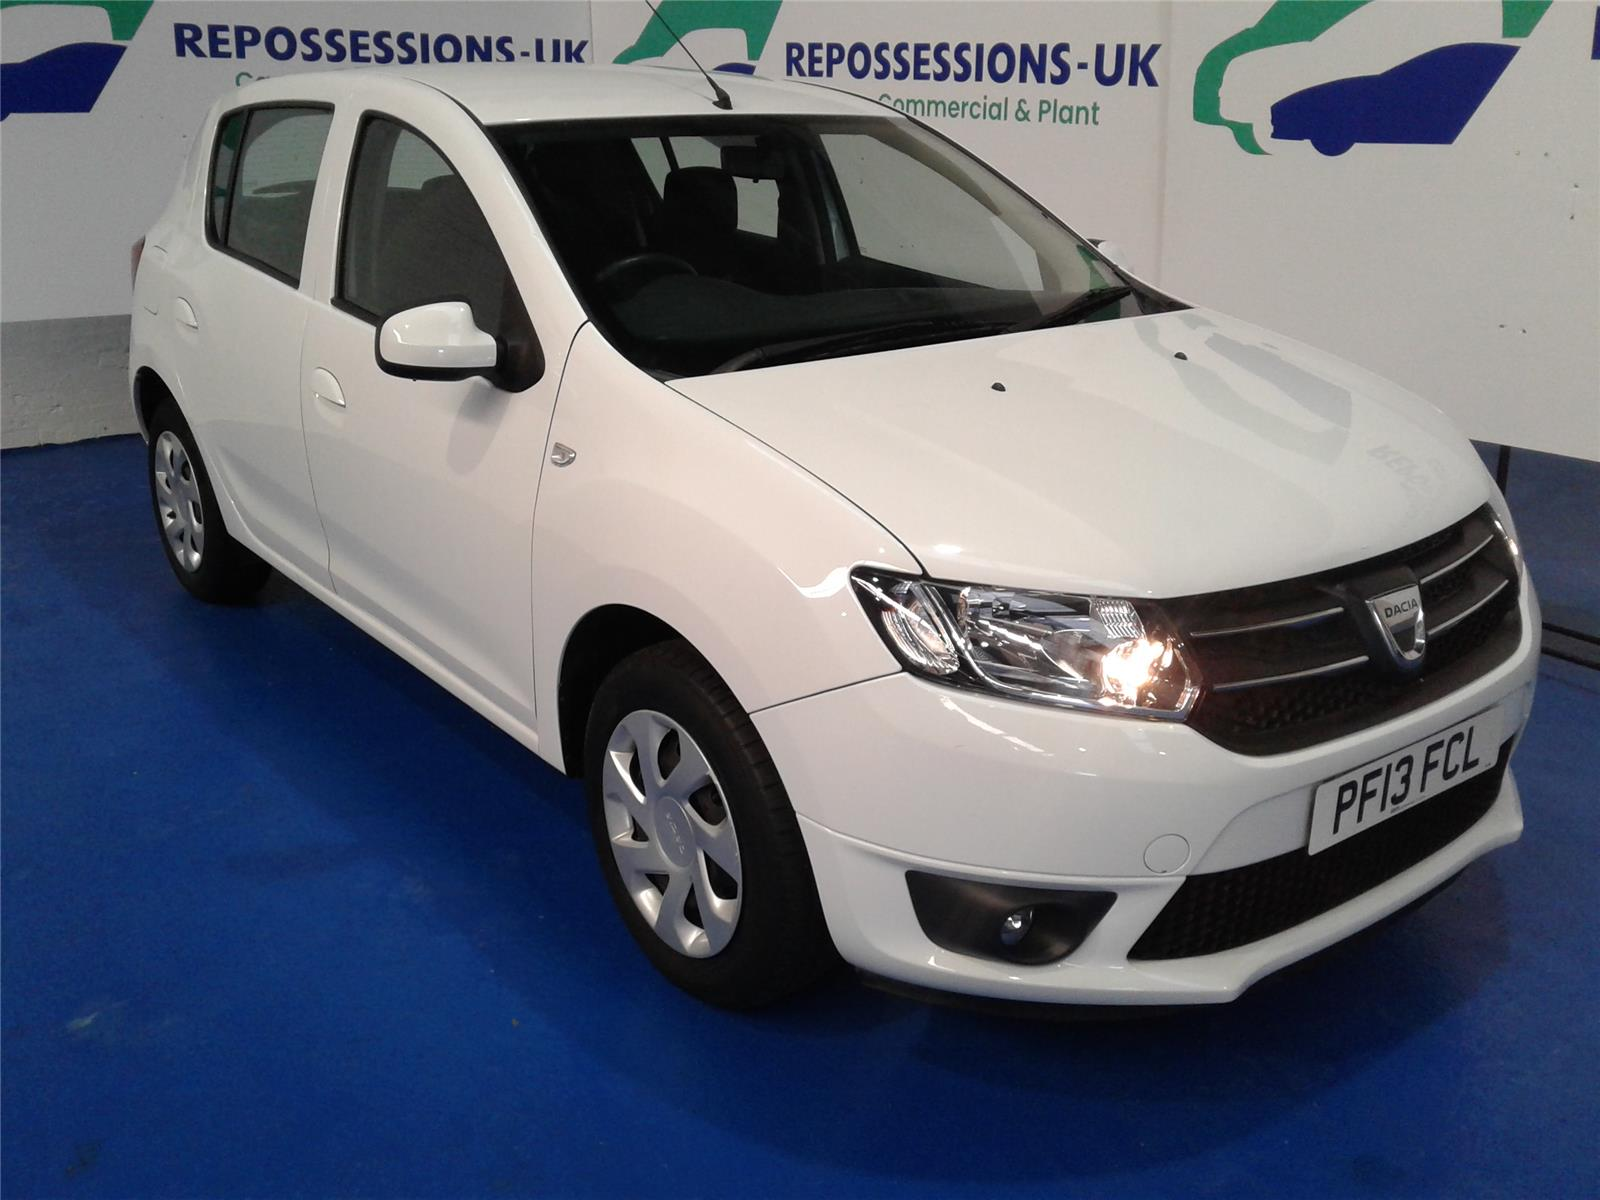 2013 DACIA SANDERO LAUREATE TCE 898 PETROL MANUAL 5 Speed 5 DOOR HATCHBACK